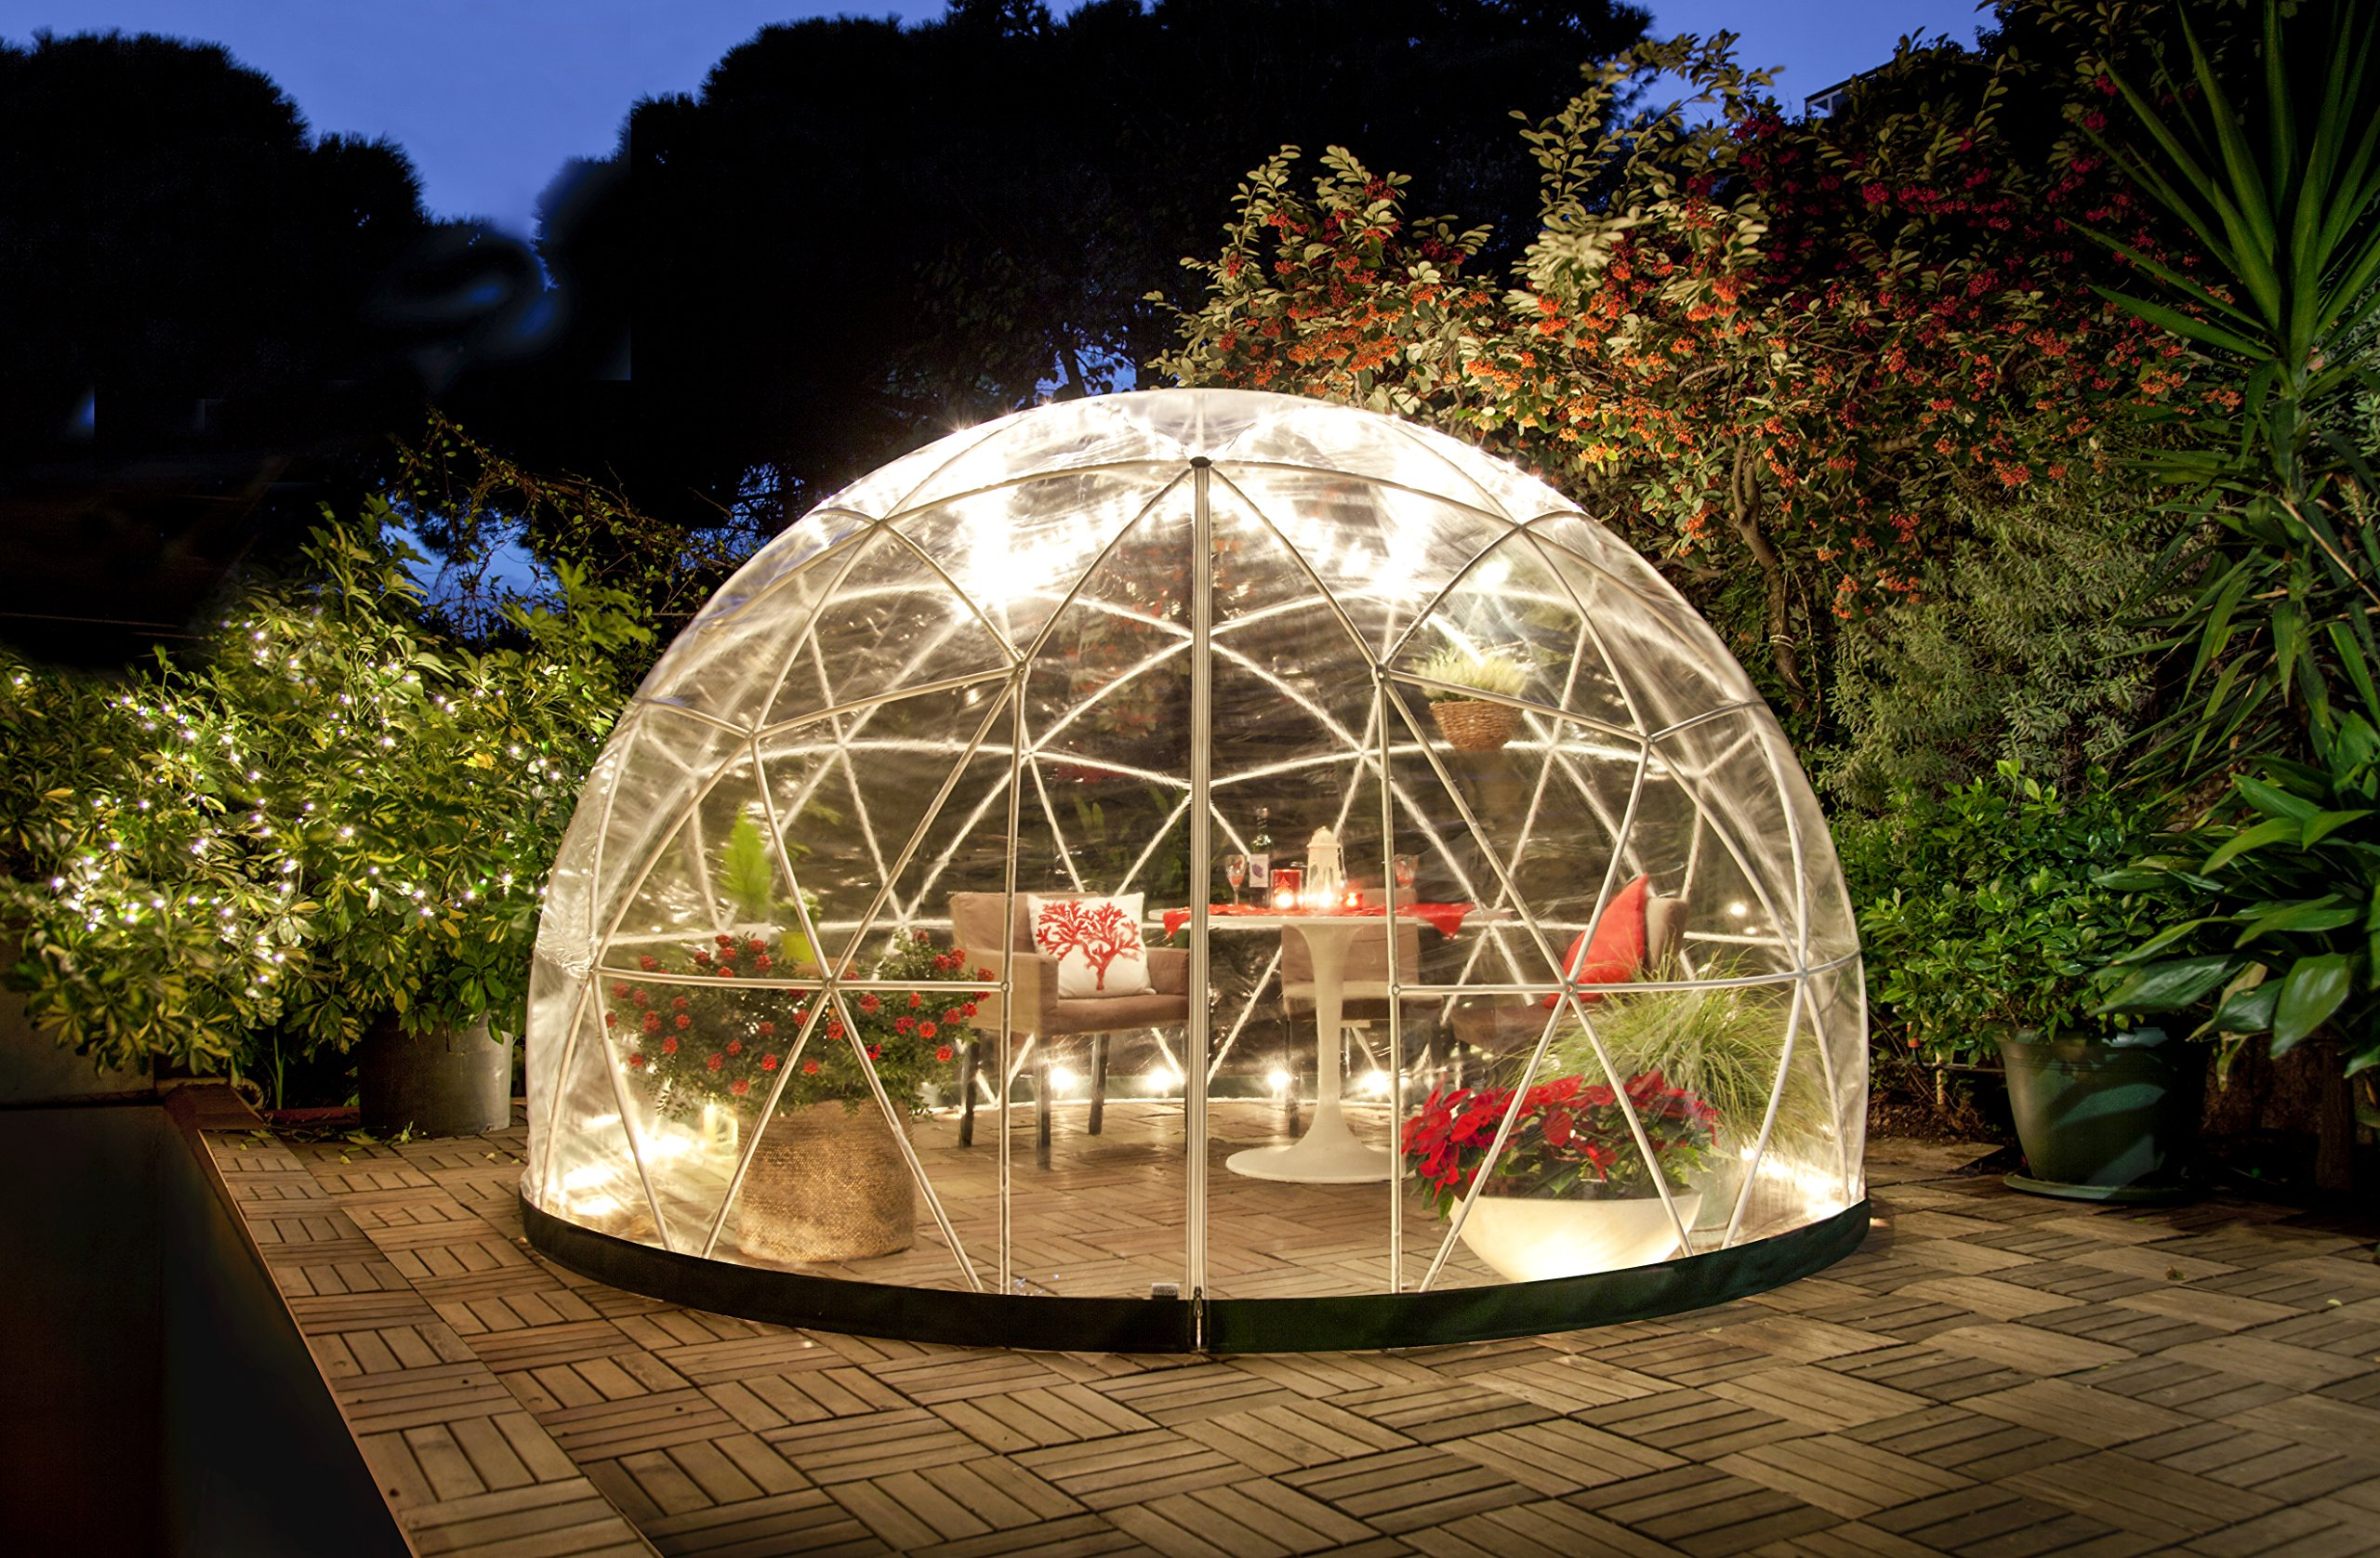 Garden Igloo 33244 Clear Greenhouse 142 X 142 X 87 inches 5